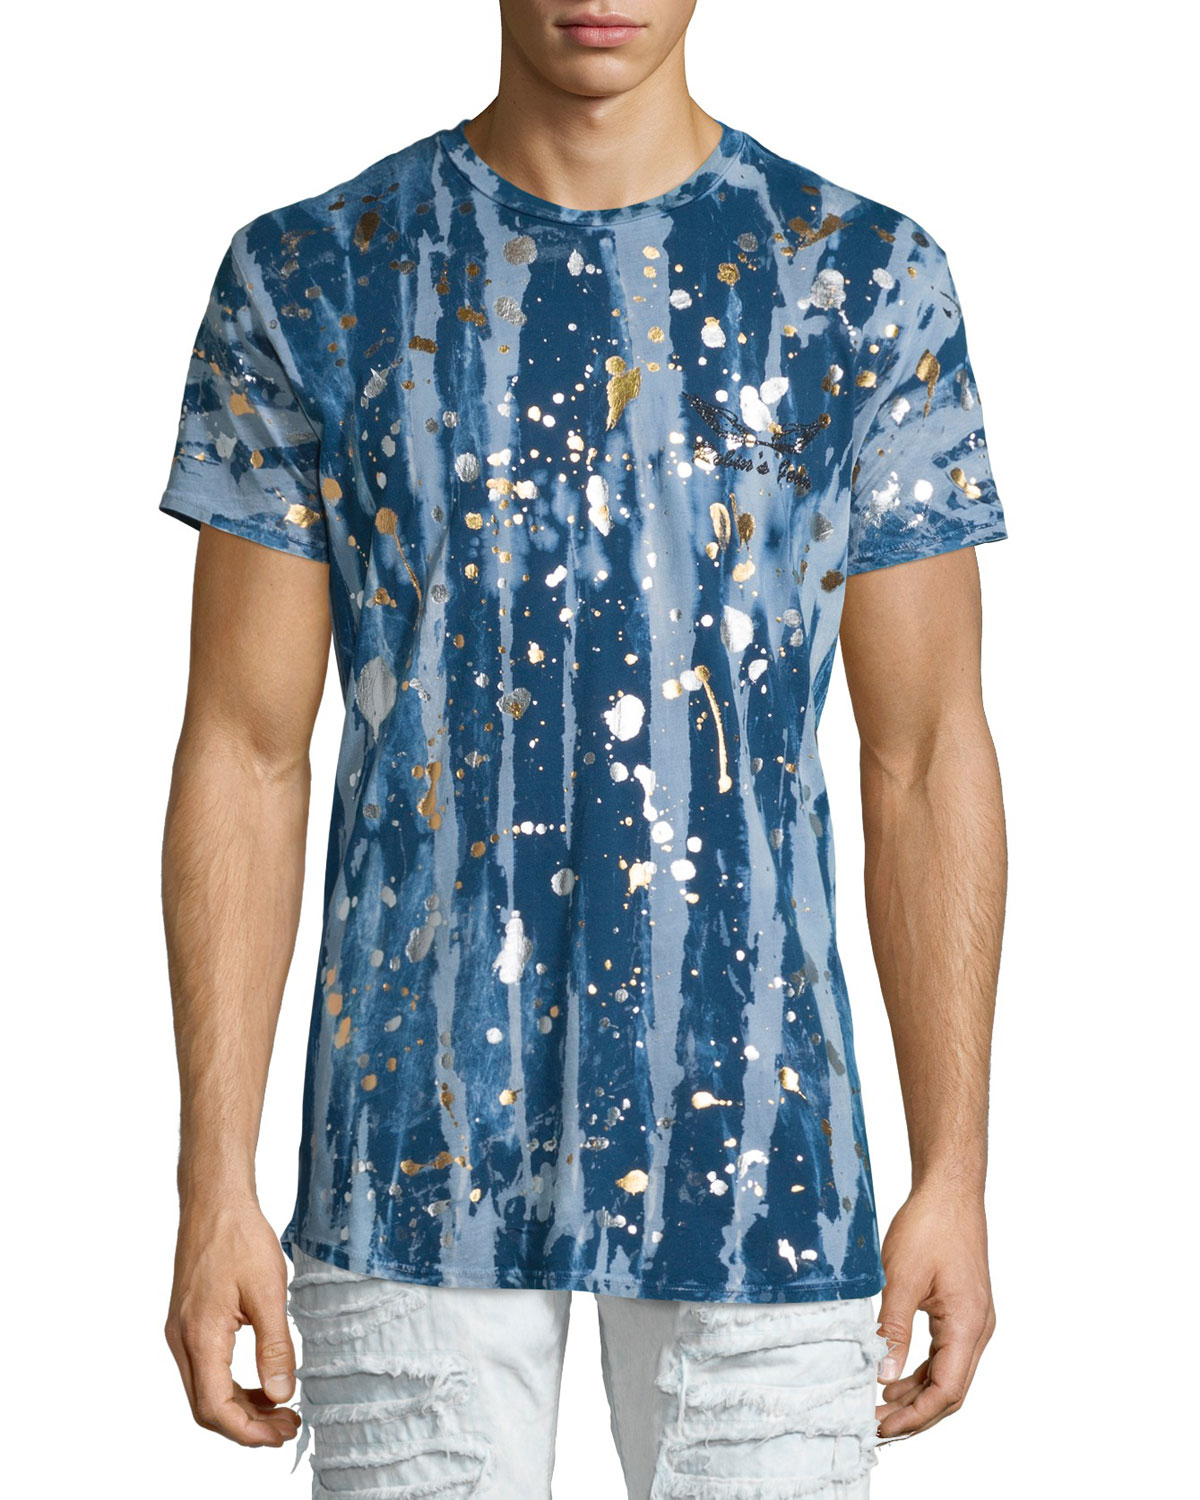 Robin 39 s jean gold paint splatter printed short sleeve t for Silver jeans t shirts